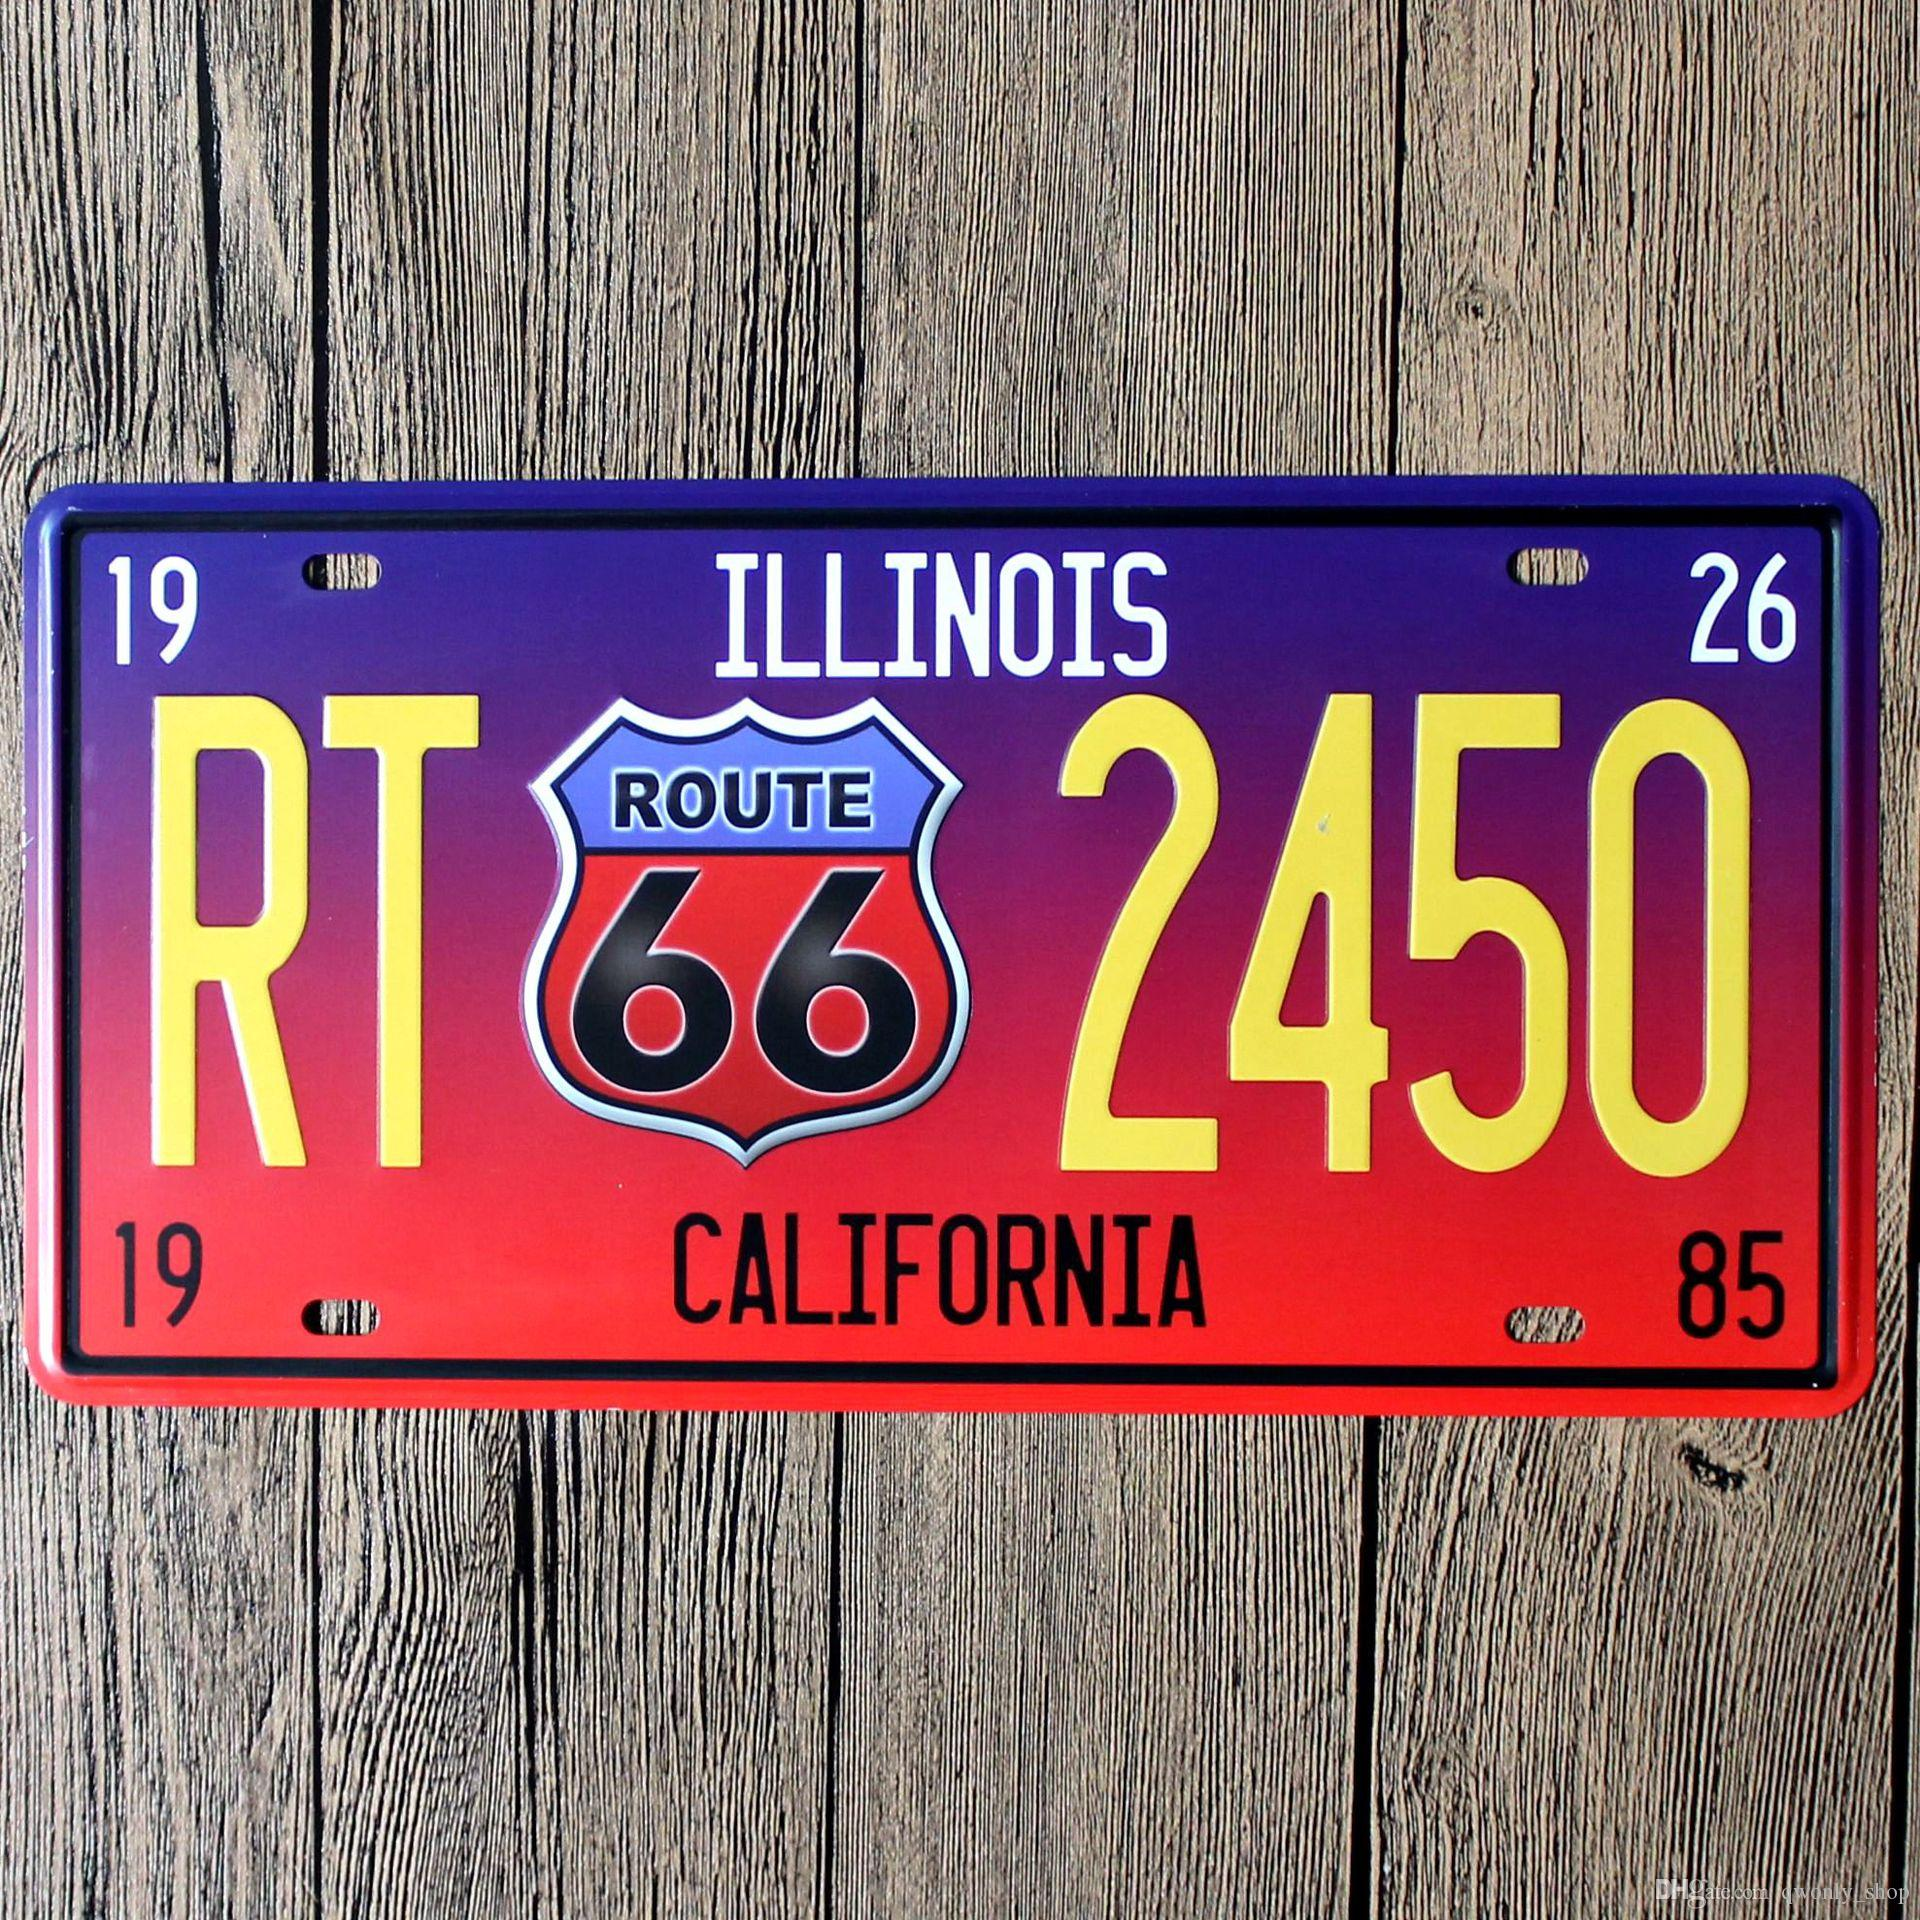 Us Route 66 Wall Decoration Vintage Metal License Plate Art Bar